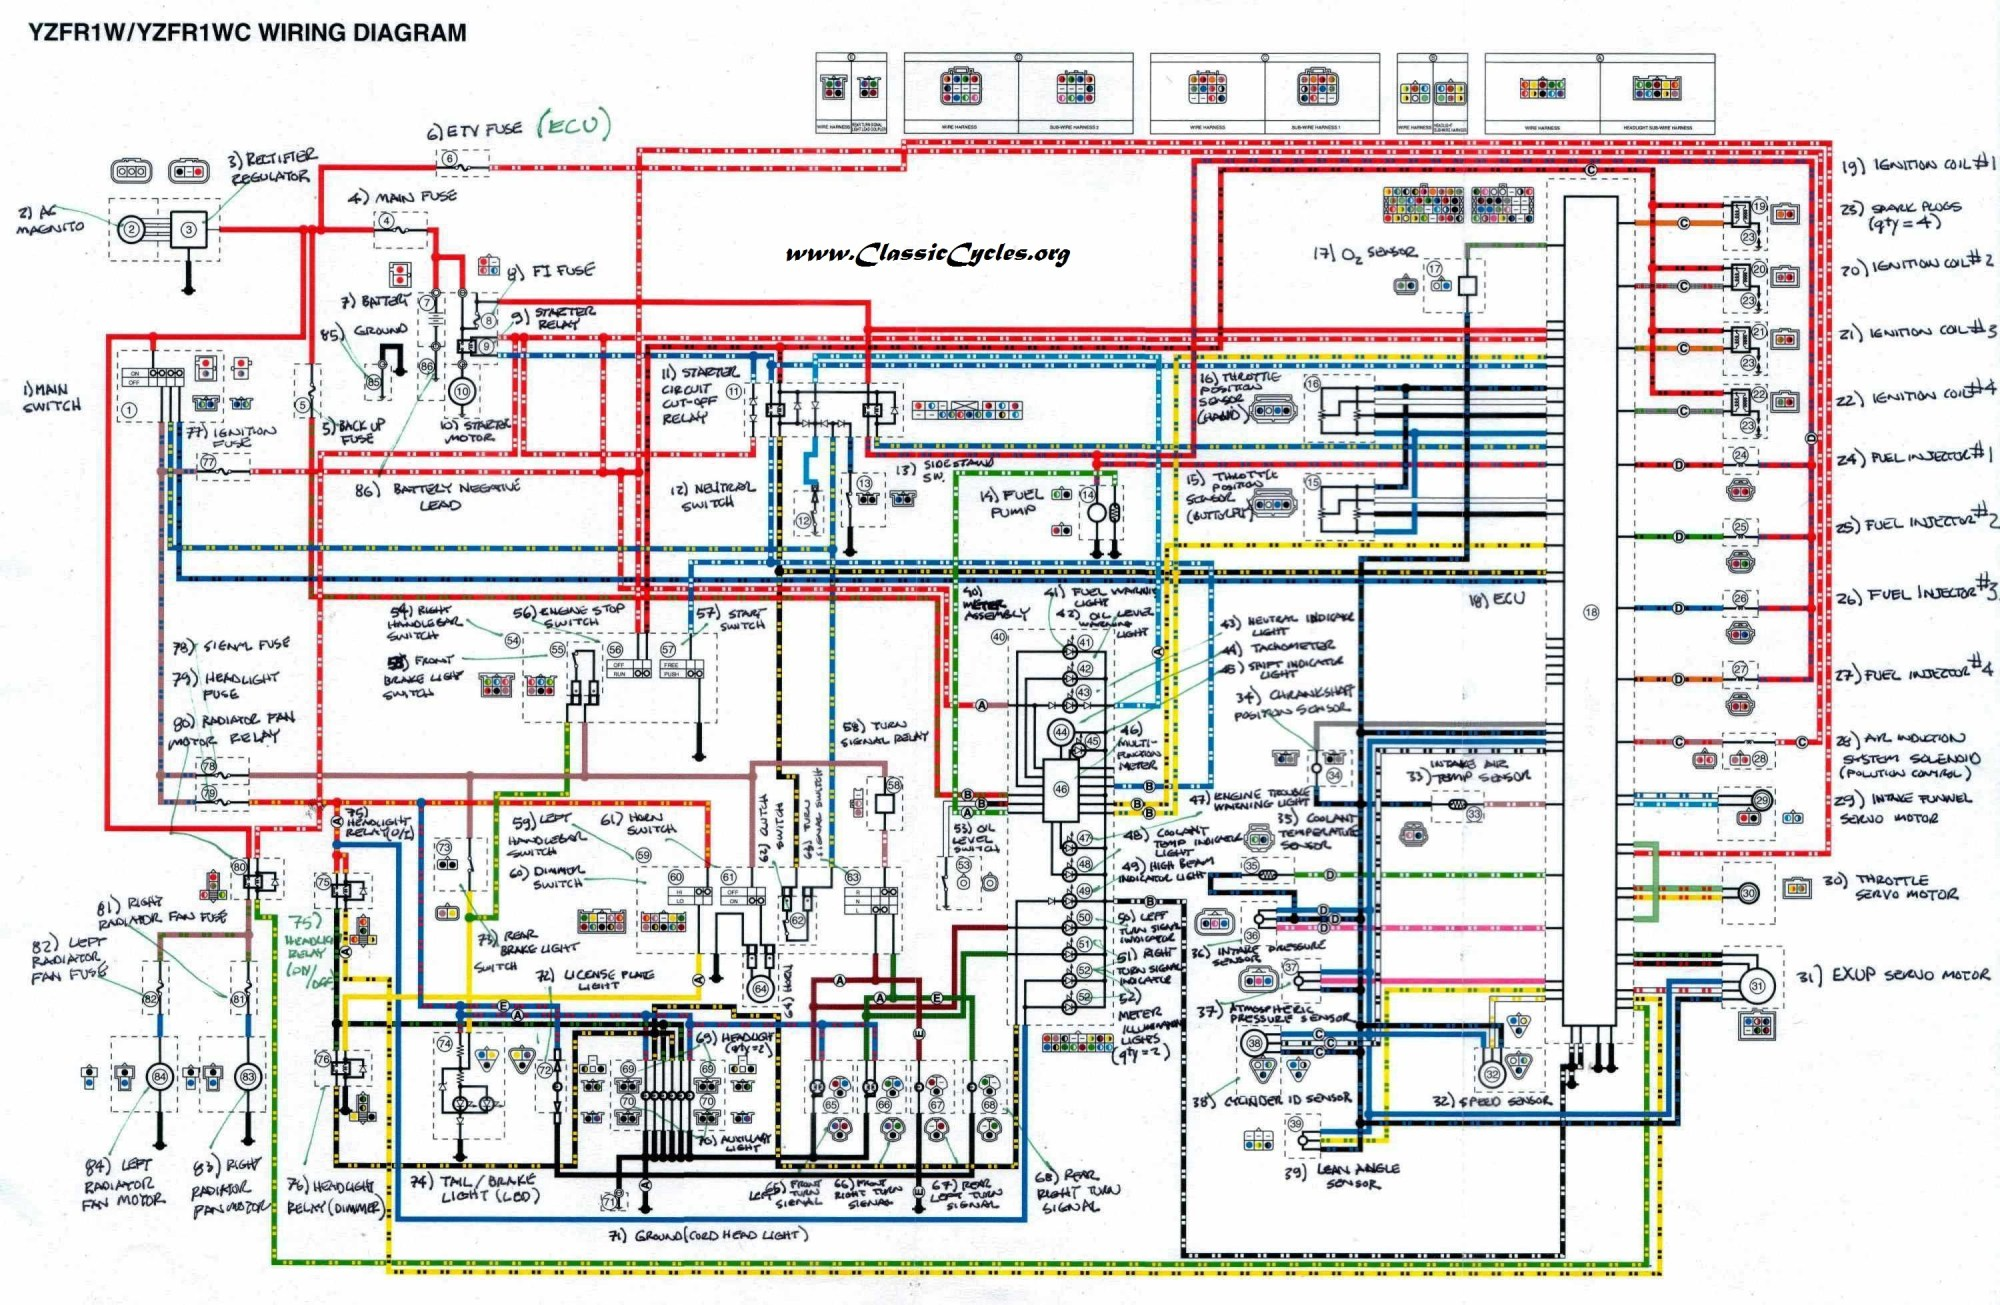 hight resolution of 2005 yamaha wiring schematic diagram wiring diagram detailed 2008 yamaha outboard tach wiring 2005 yamaha outboard engine diagram wiring schematic